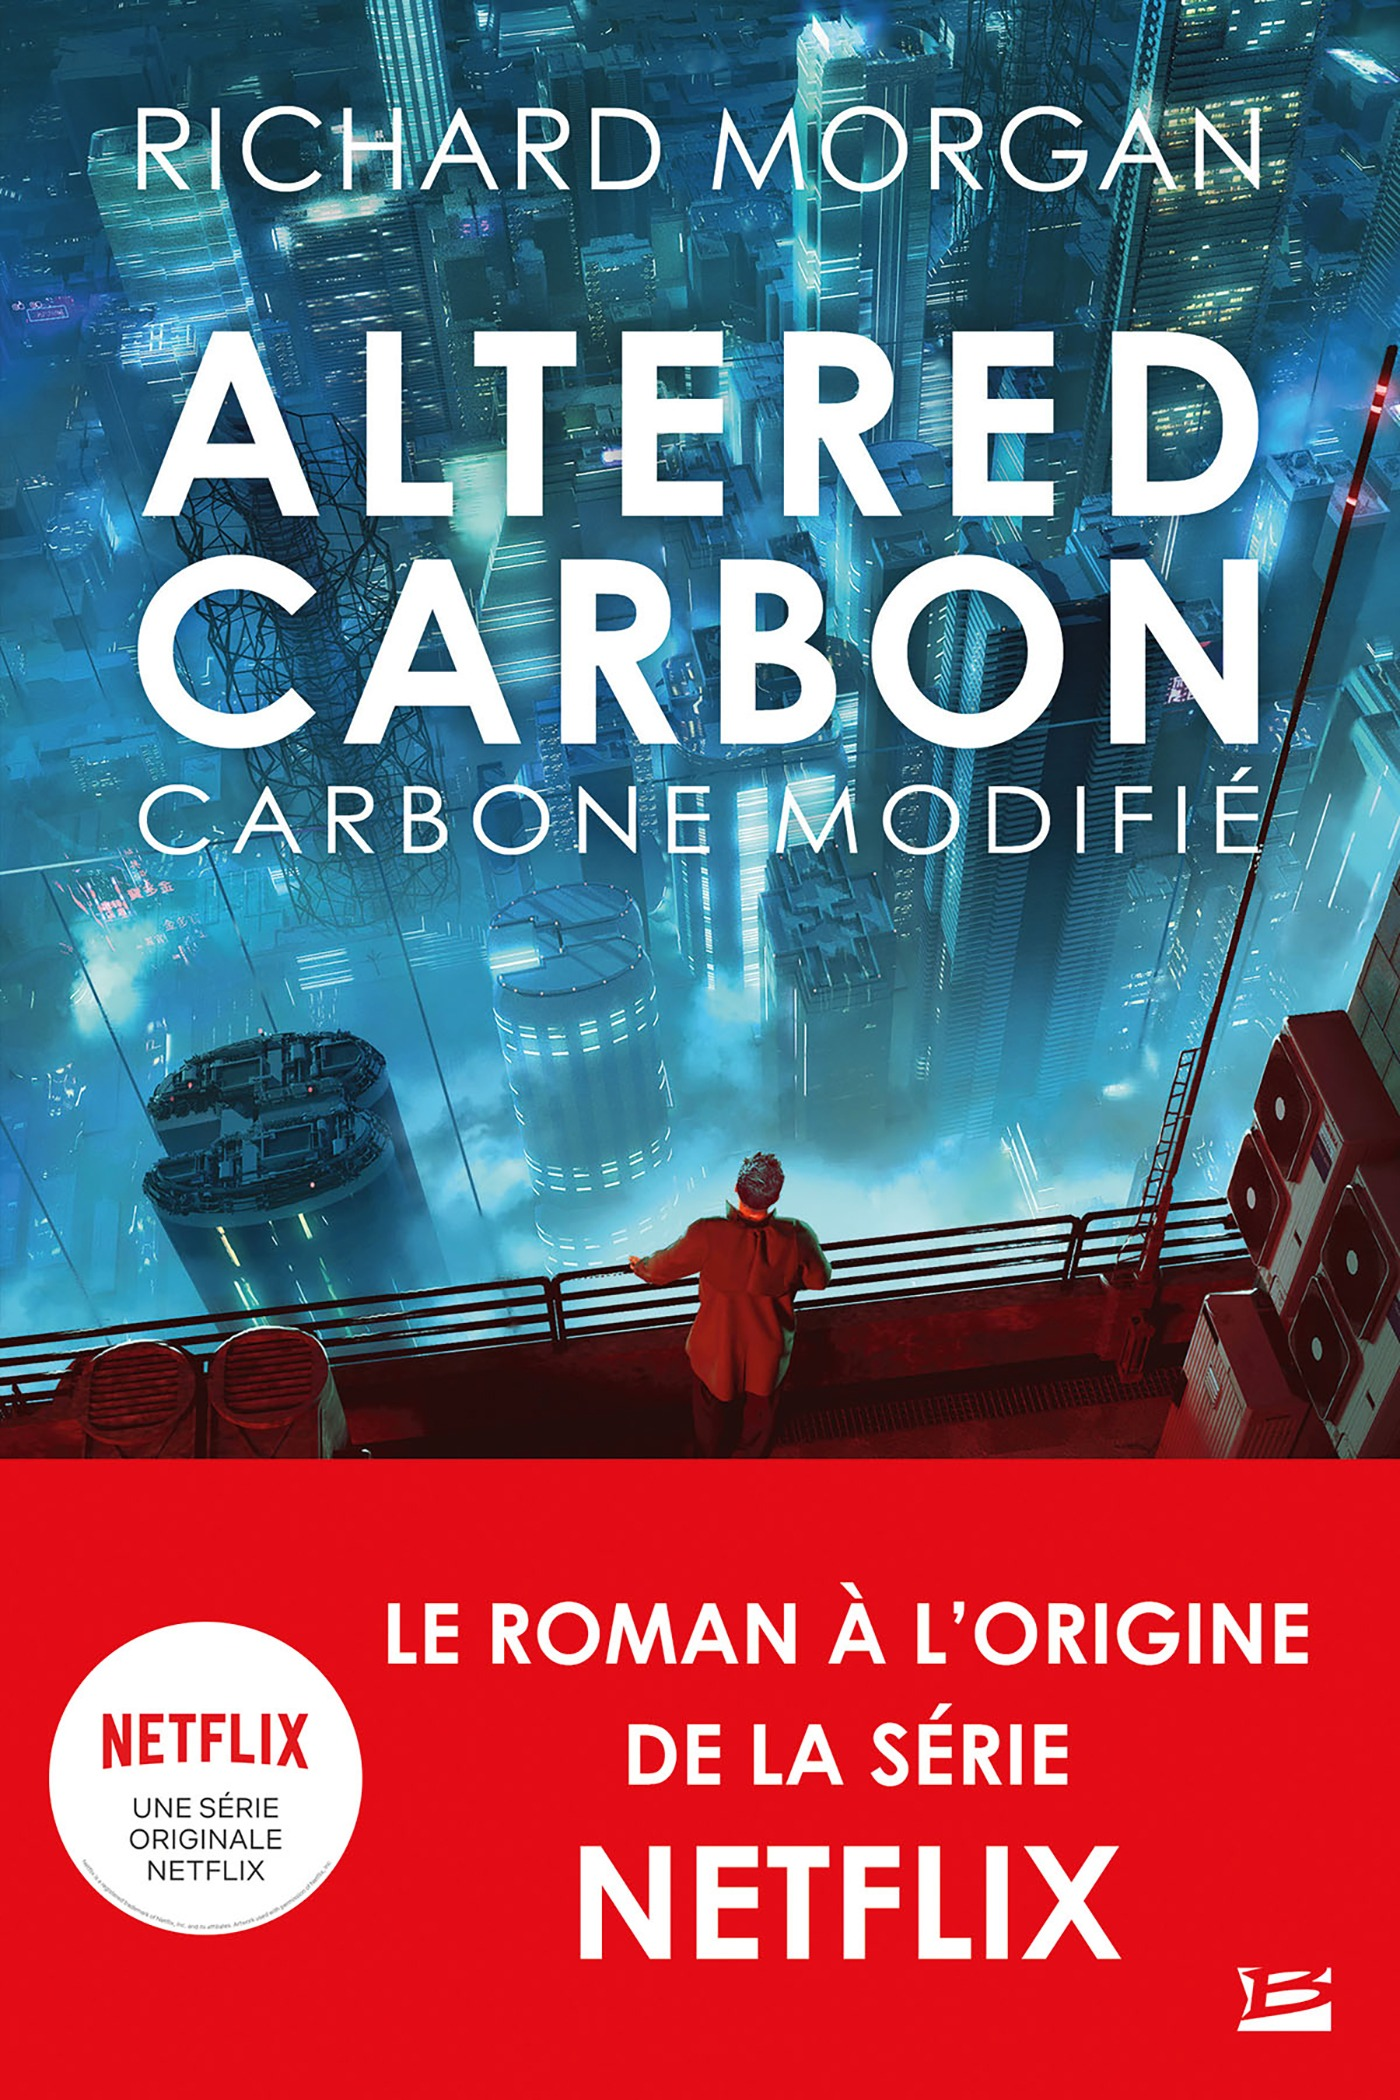 Carbone modifié, ALTERED CARBON, T1